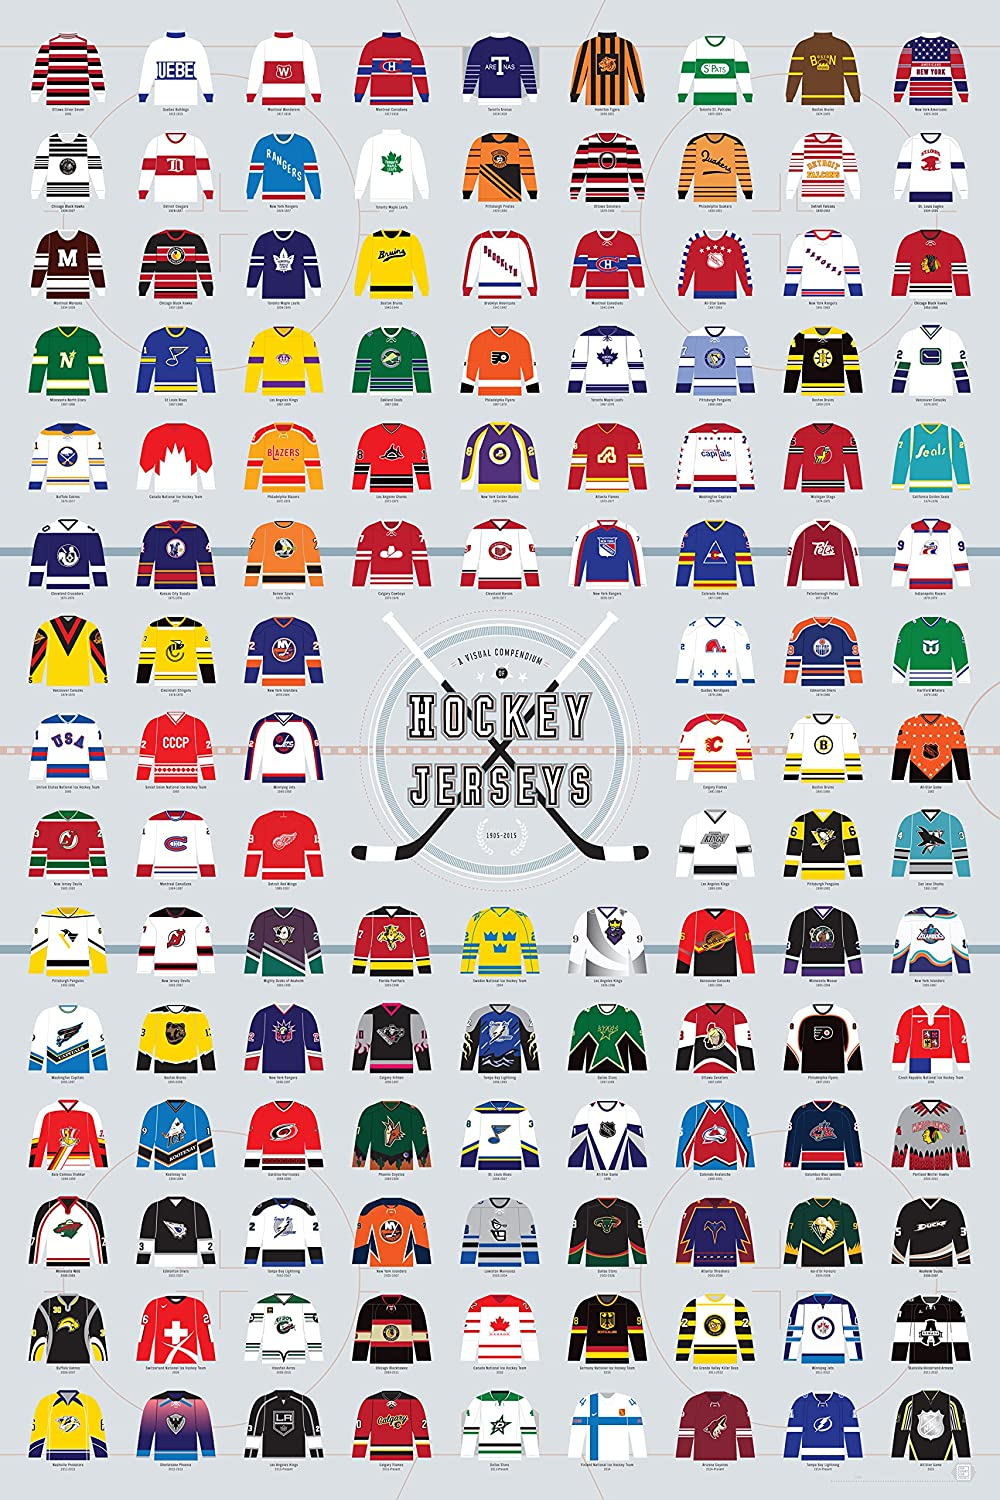 Pop Chart A Visual Compendium of Hockey Jerseys Poster Print, 24  x 36 , Multicolord